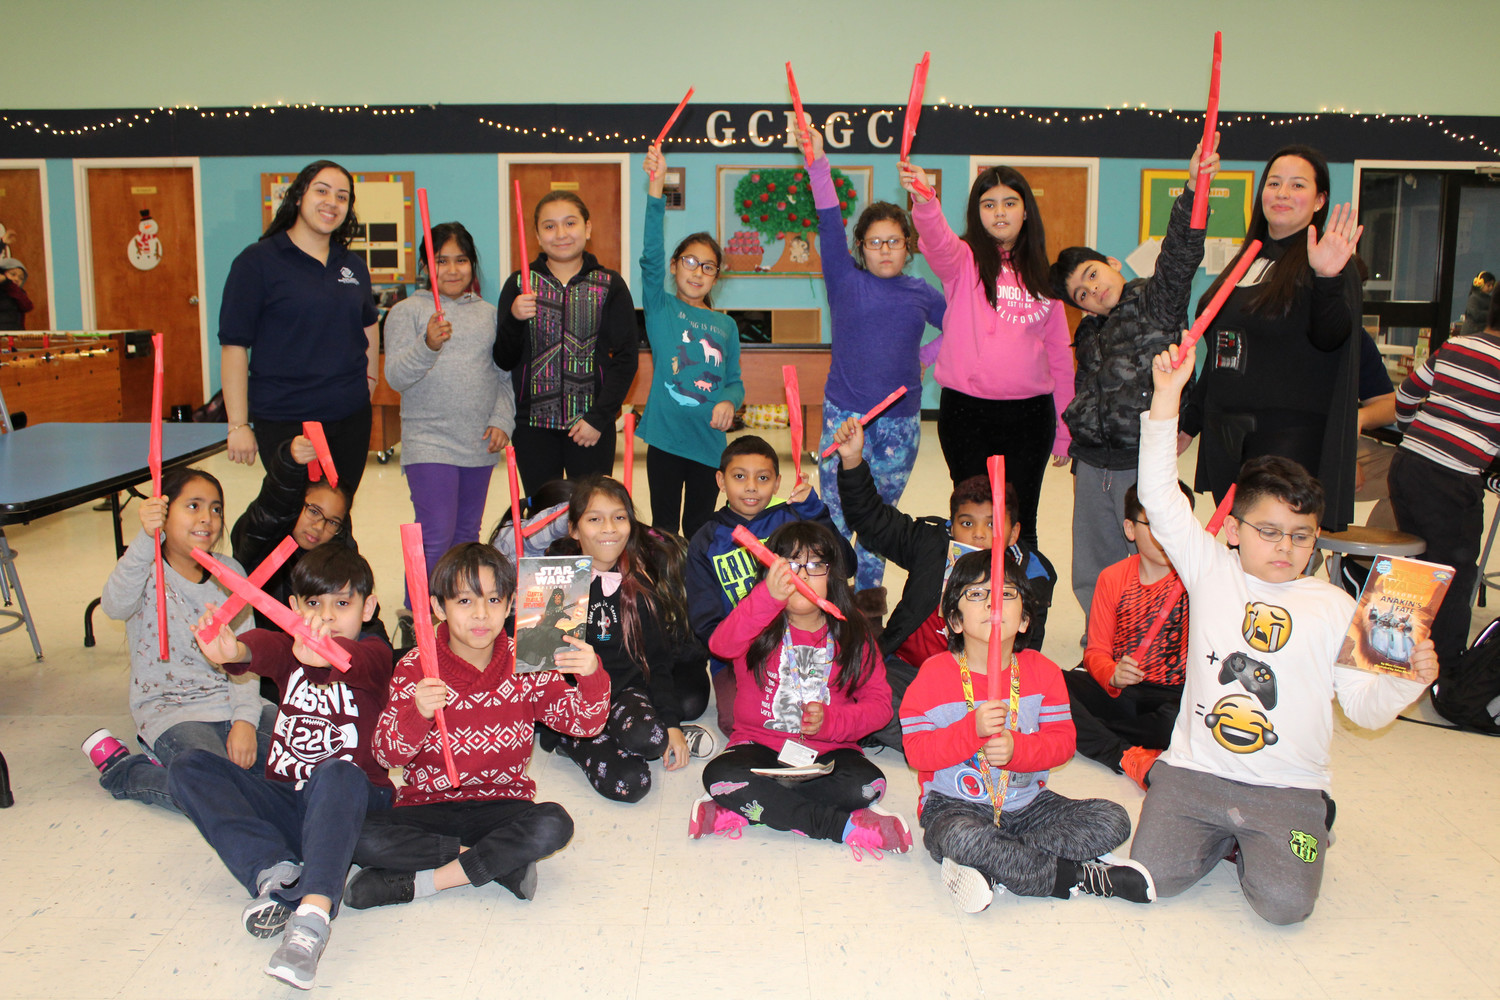 The kids of the Glen Cove Boys and Girls Club showed off their lightsaber skills with Jacqueline Telleria, the program director.